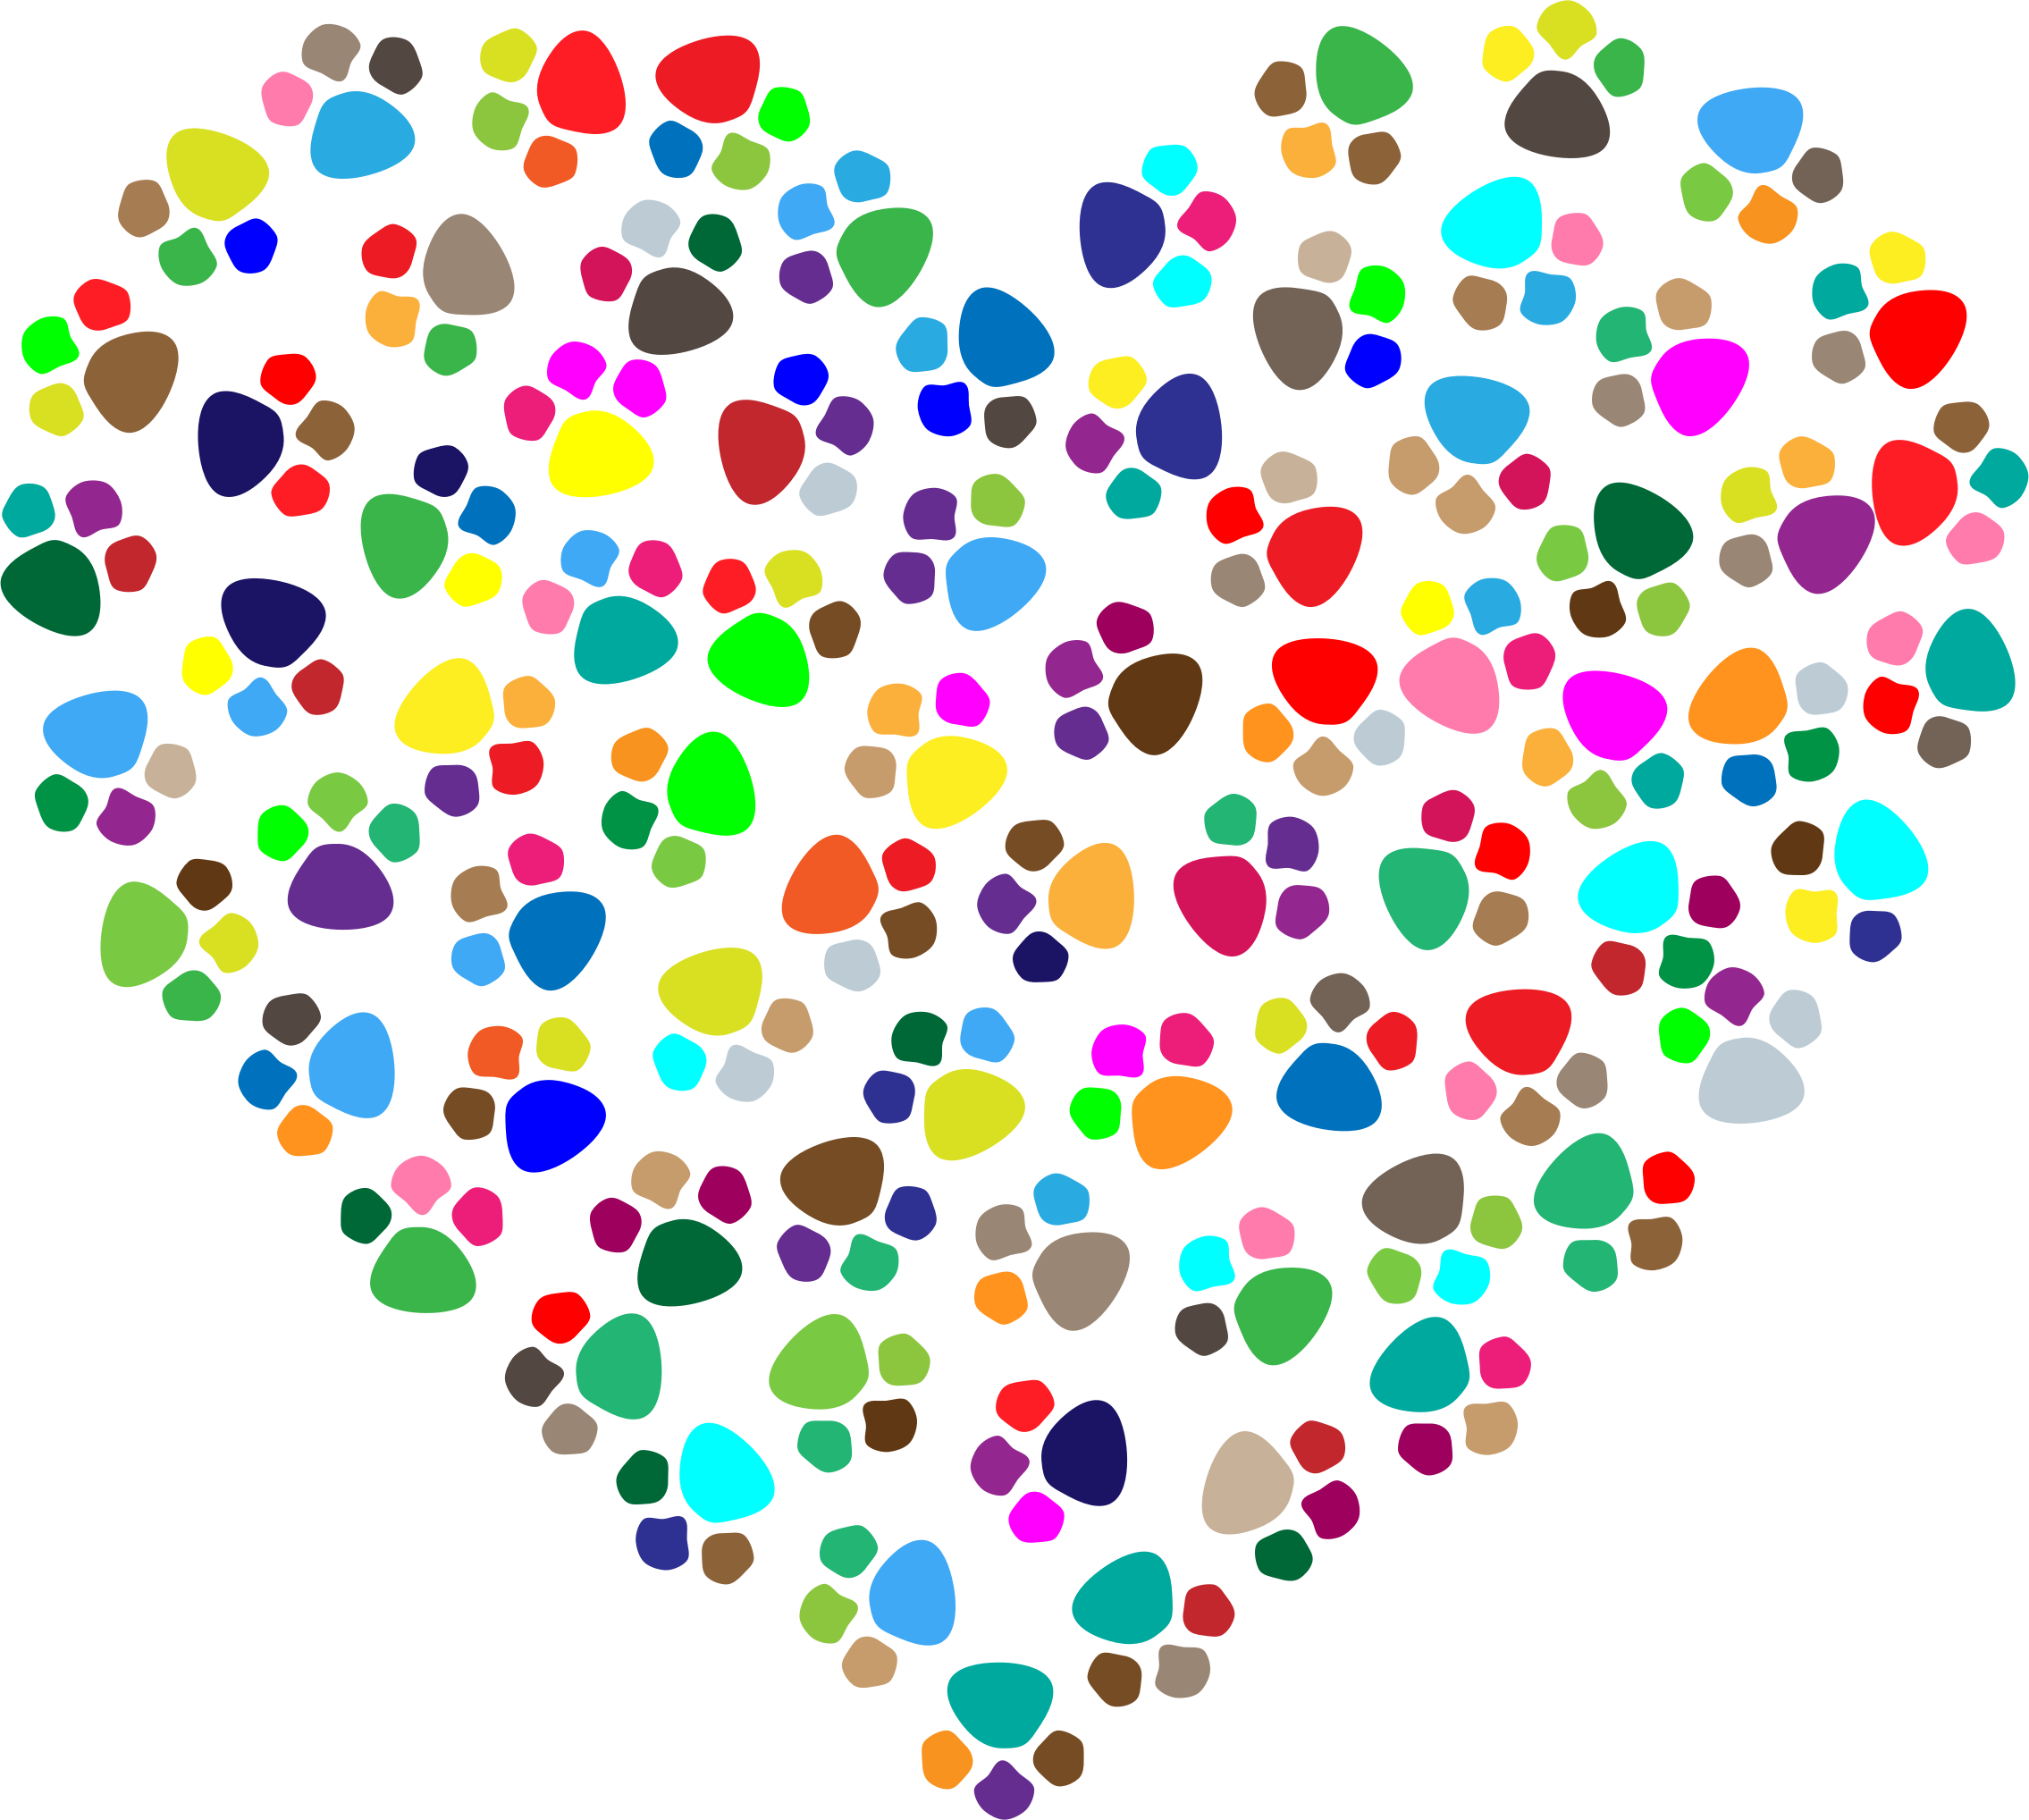 Paw print heart clipart clipart black and white Clipart - Prismatic Paw Prints Heart 2 clipart black and white